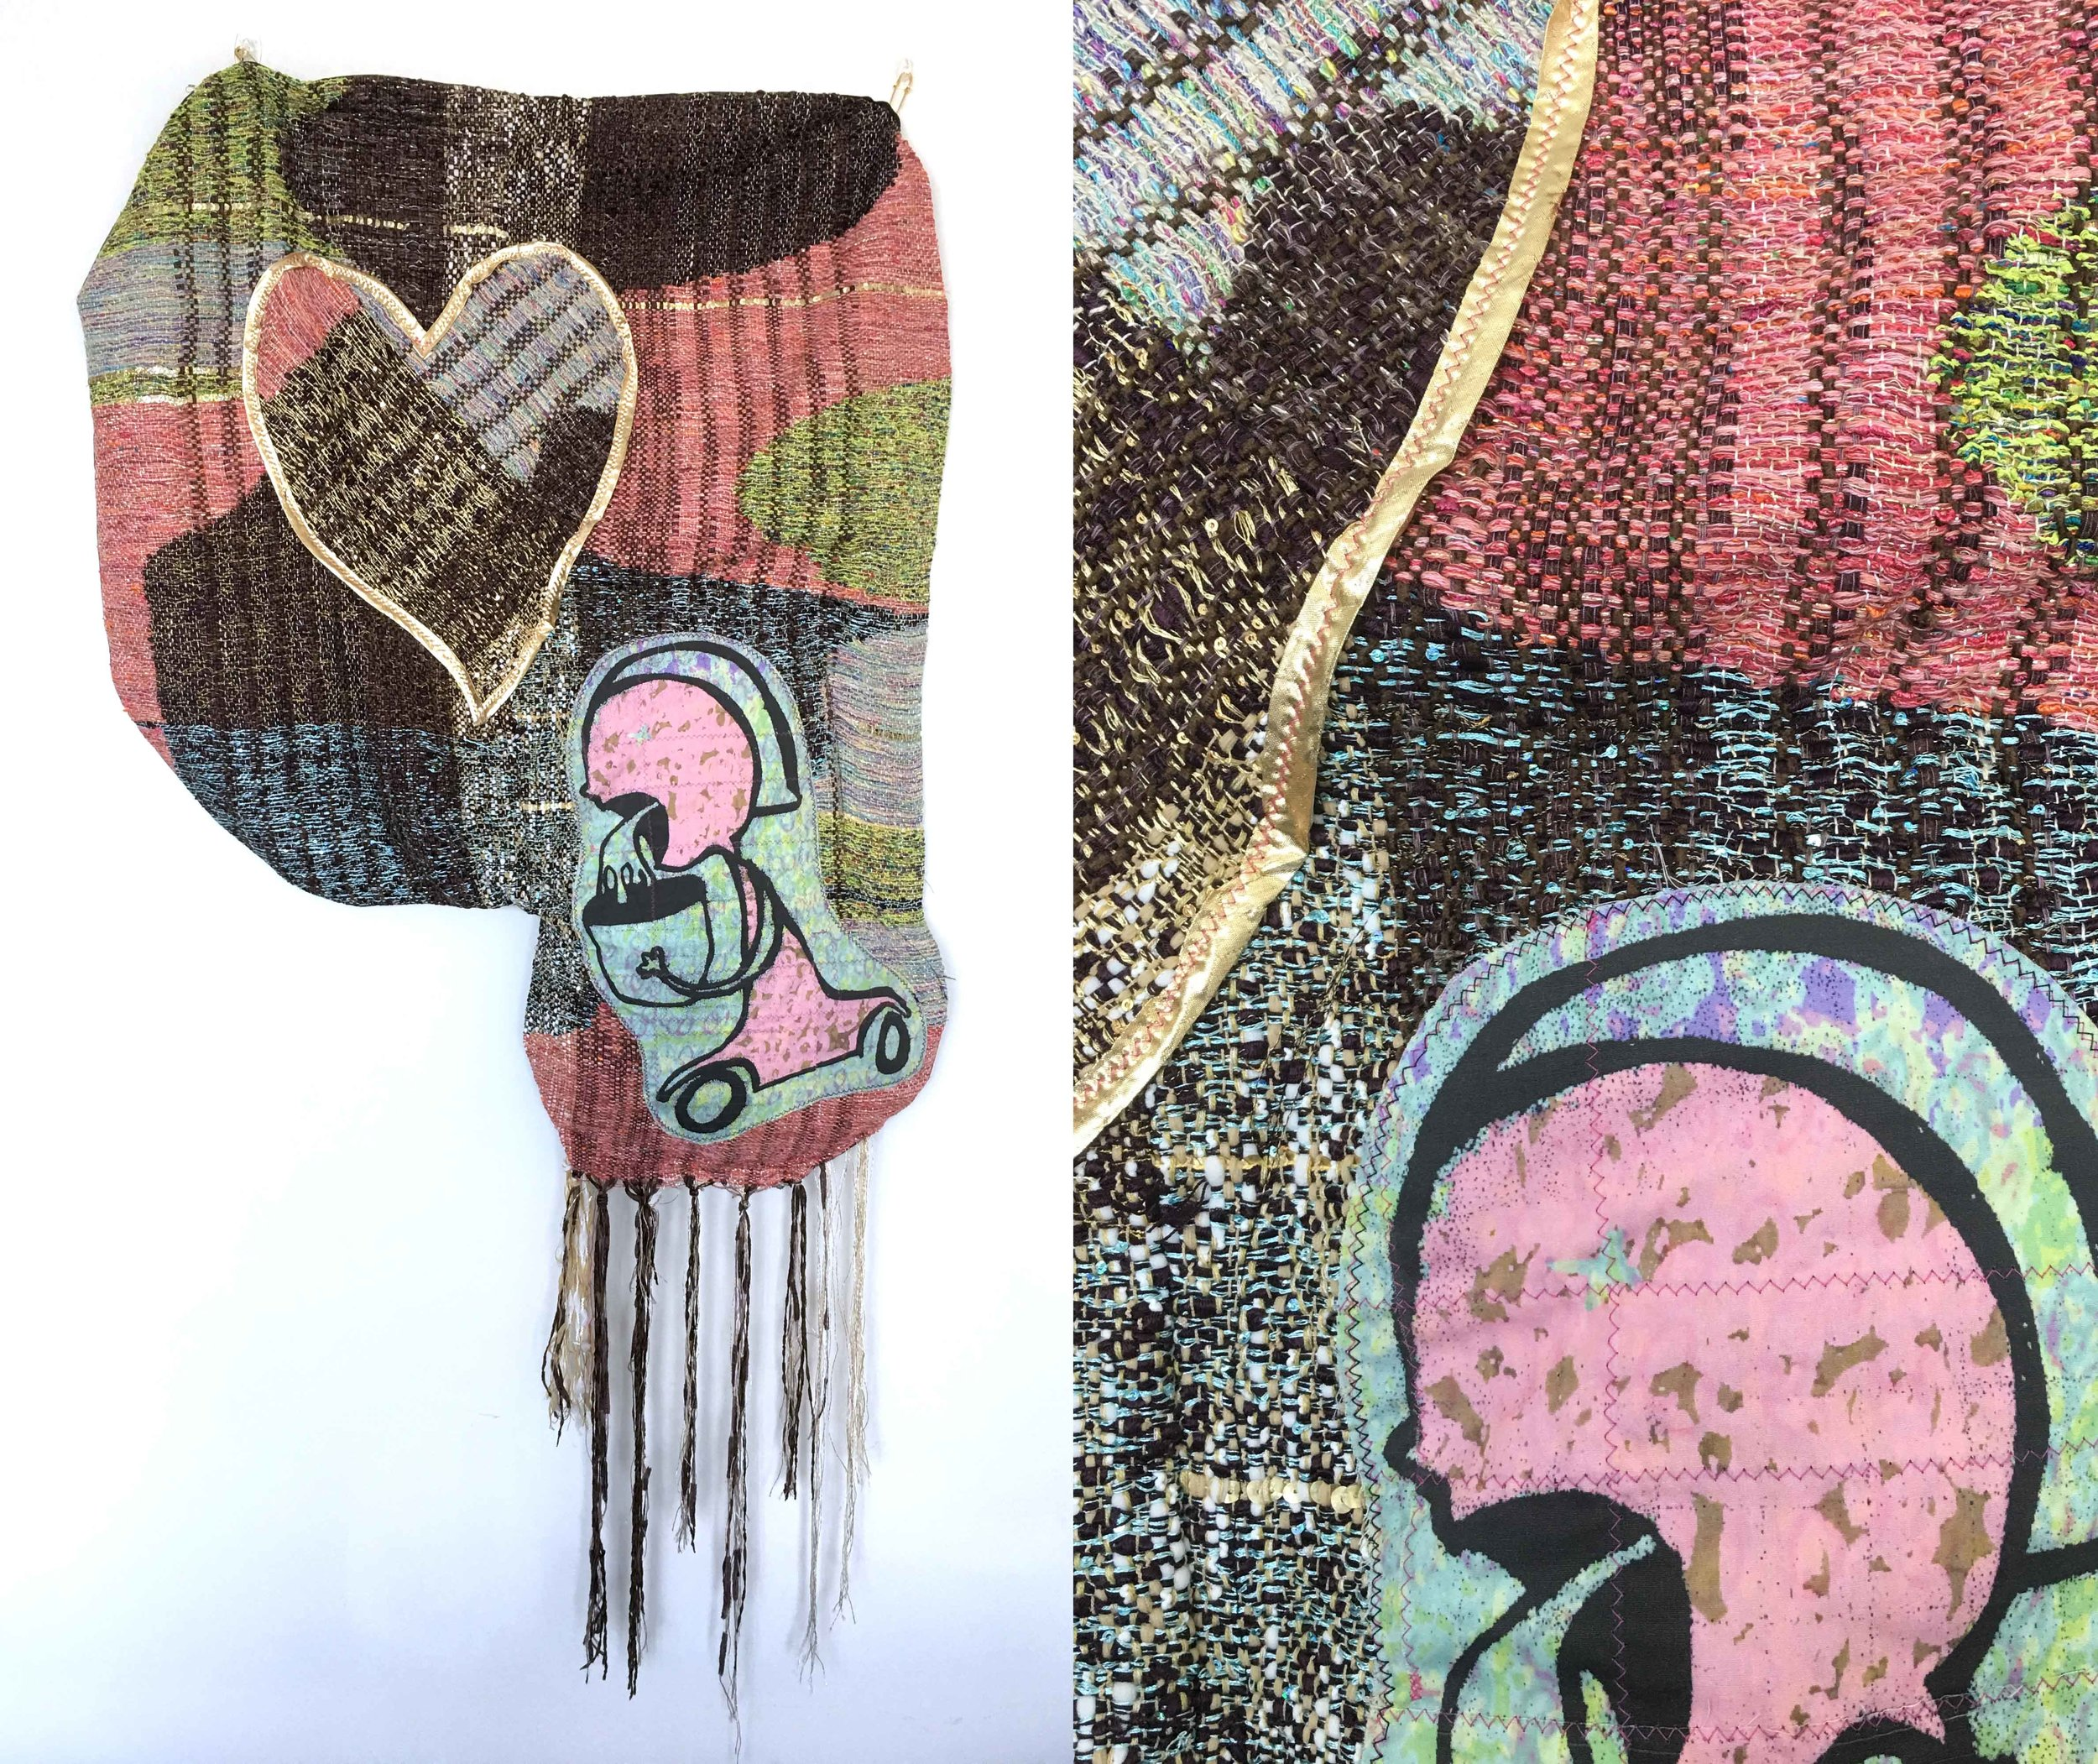 """Really Love Sick  h: 36"""" x w: 28"""" hand-woven and machine-made fabric, embroidery, inkjet prints, fleece 2017"""